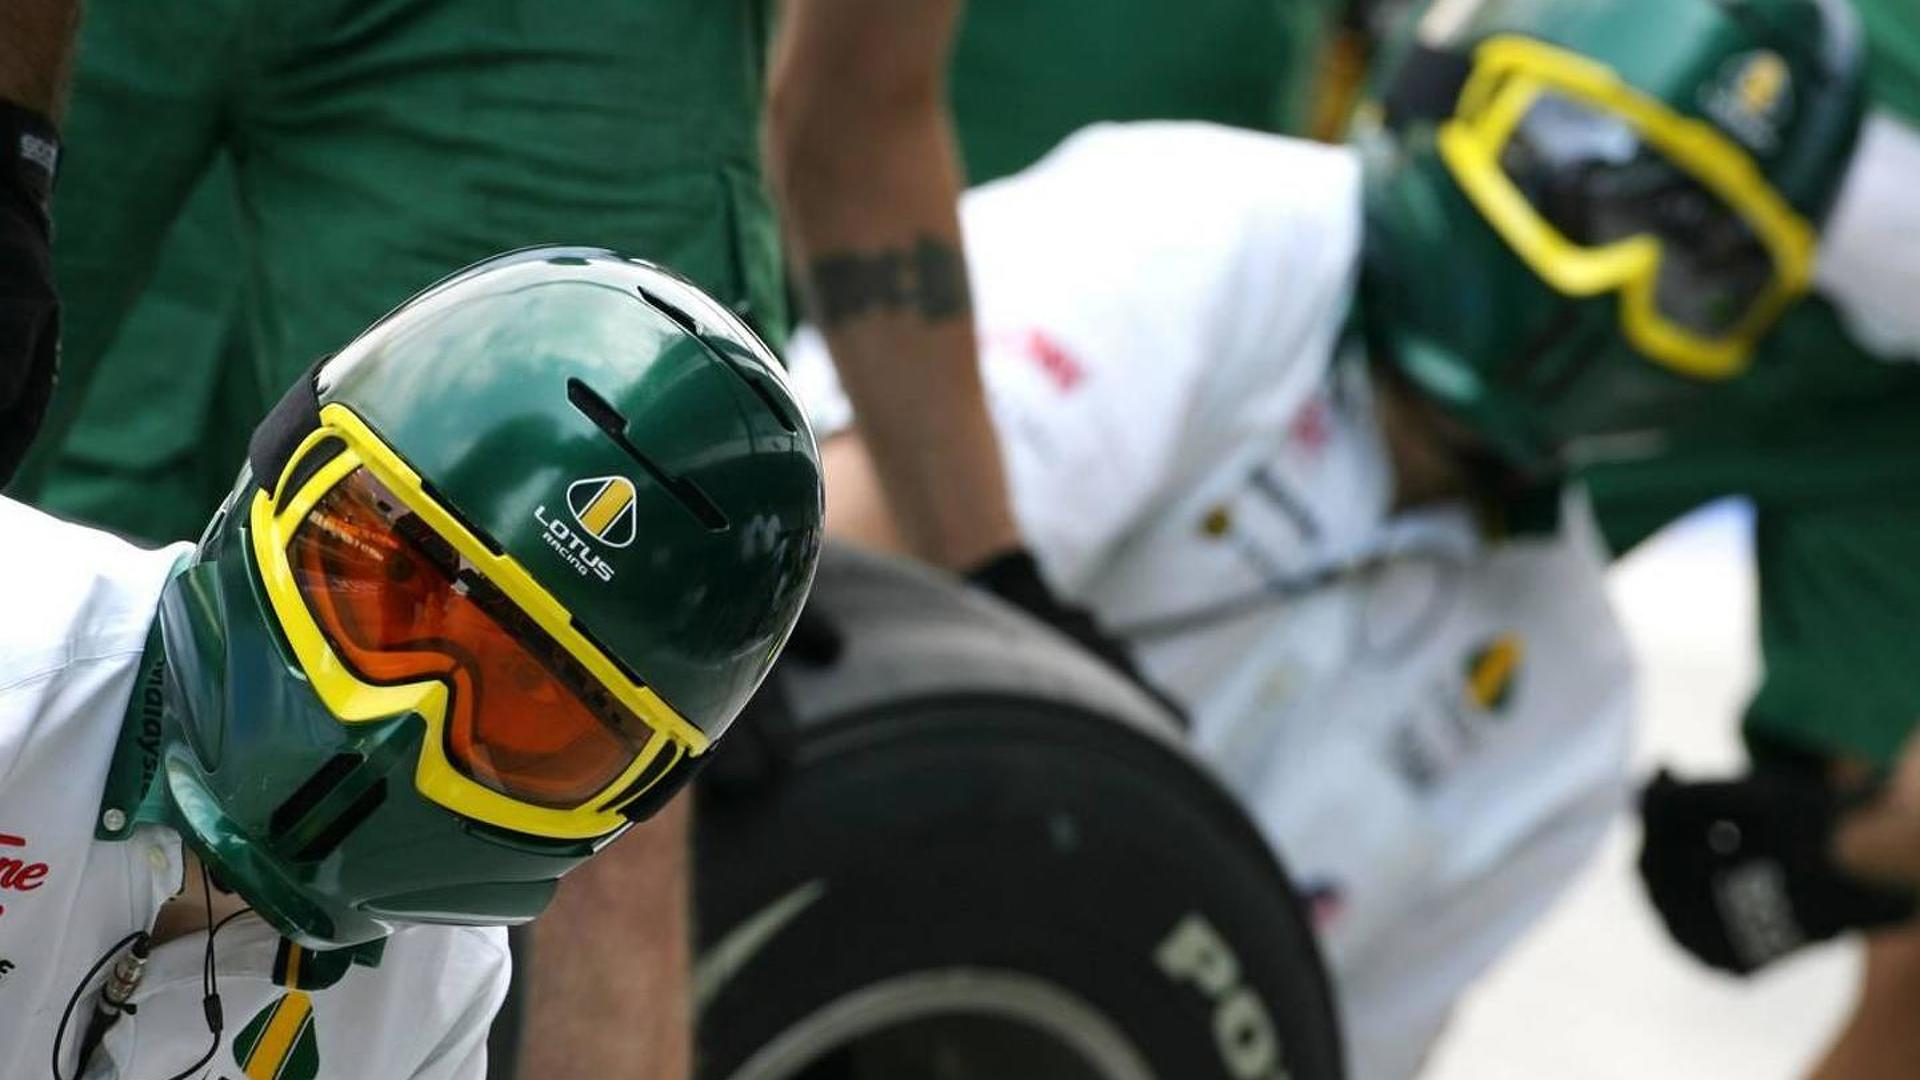 Team Lotus to replace reserve Fauzy with GP2 drivers